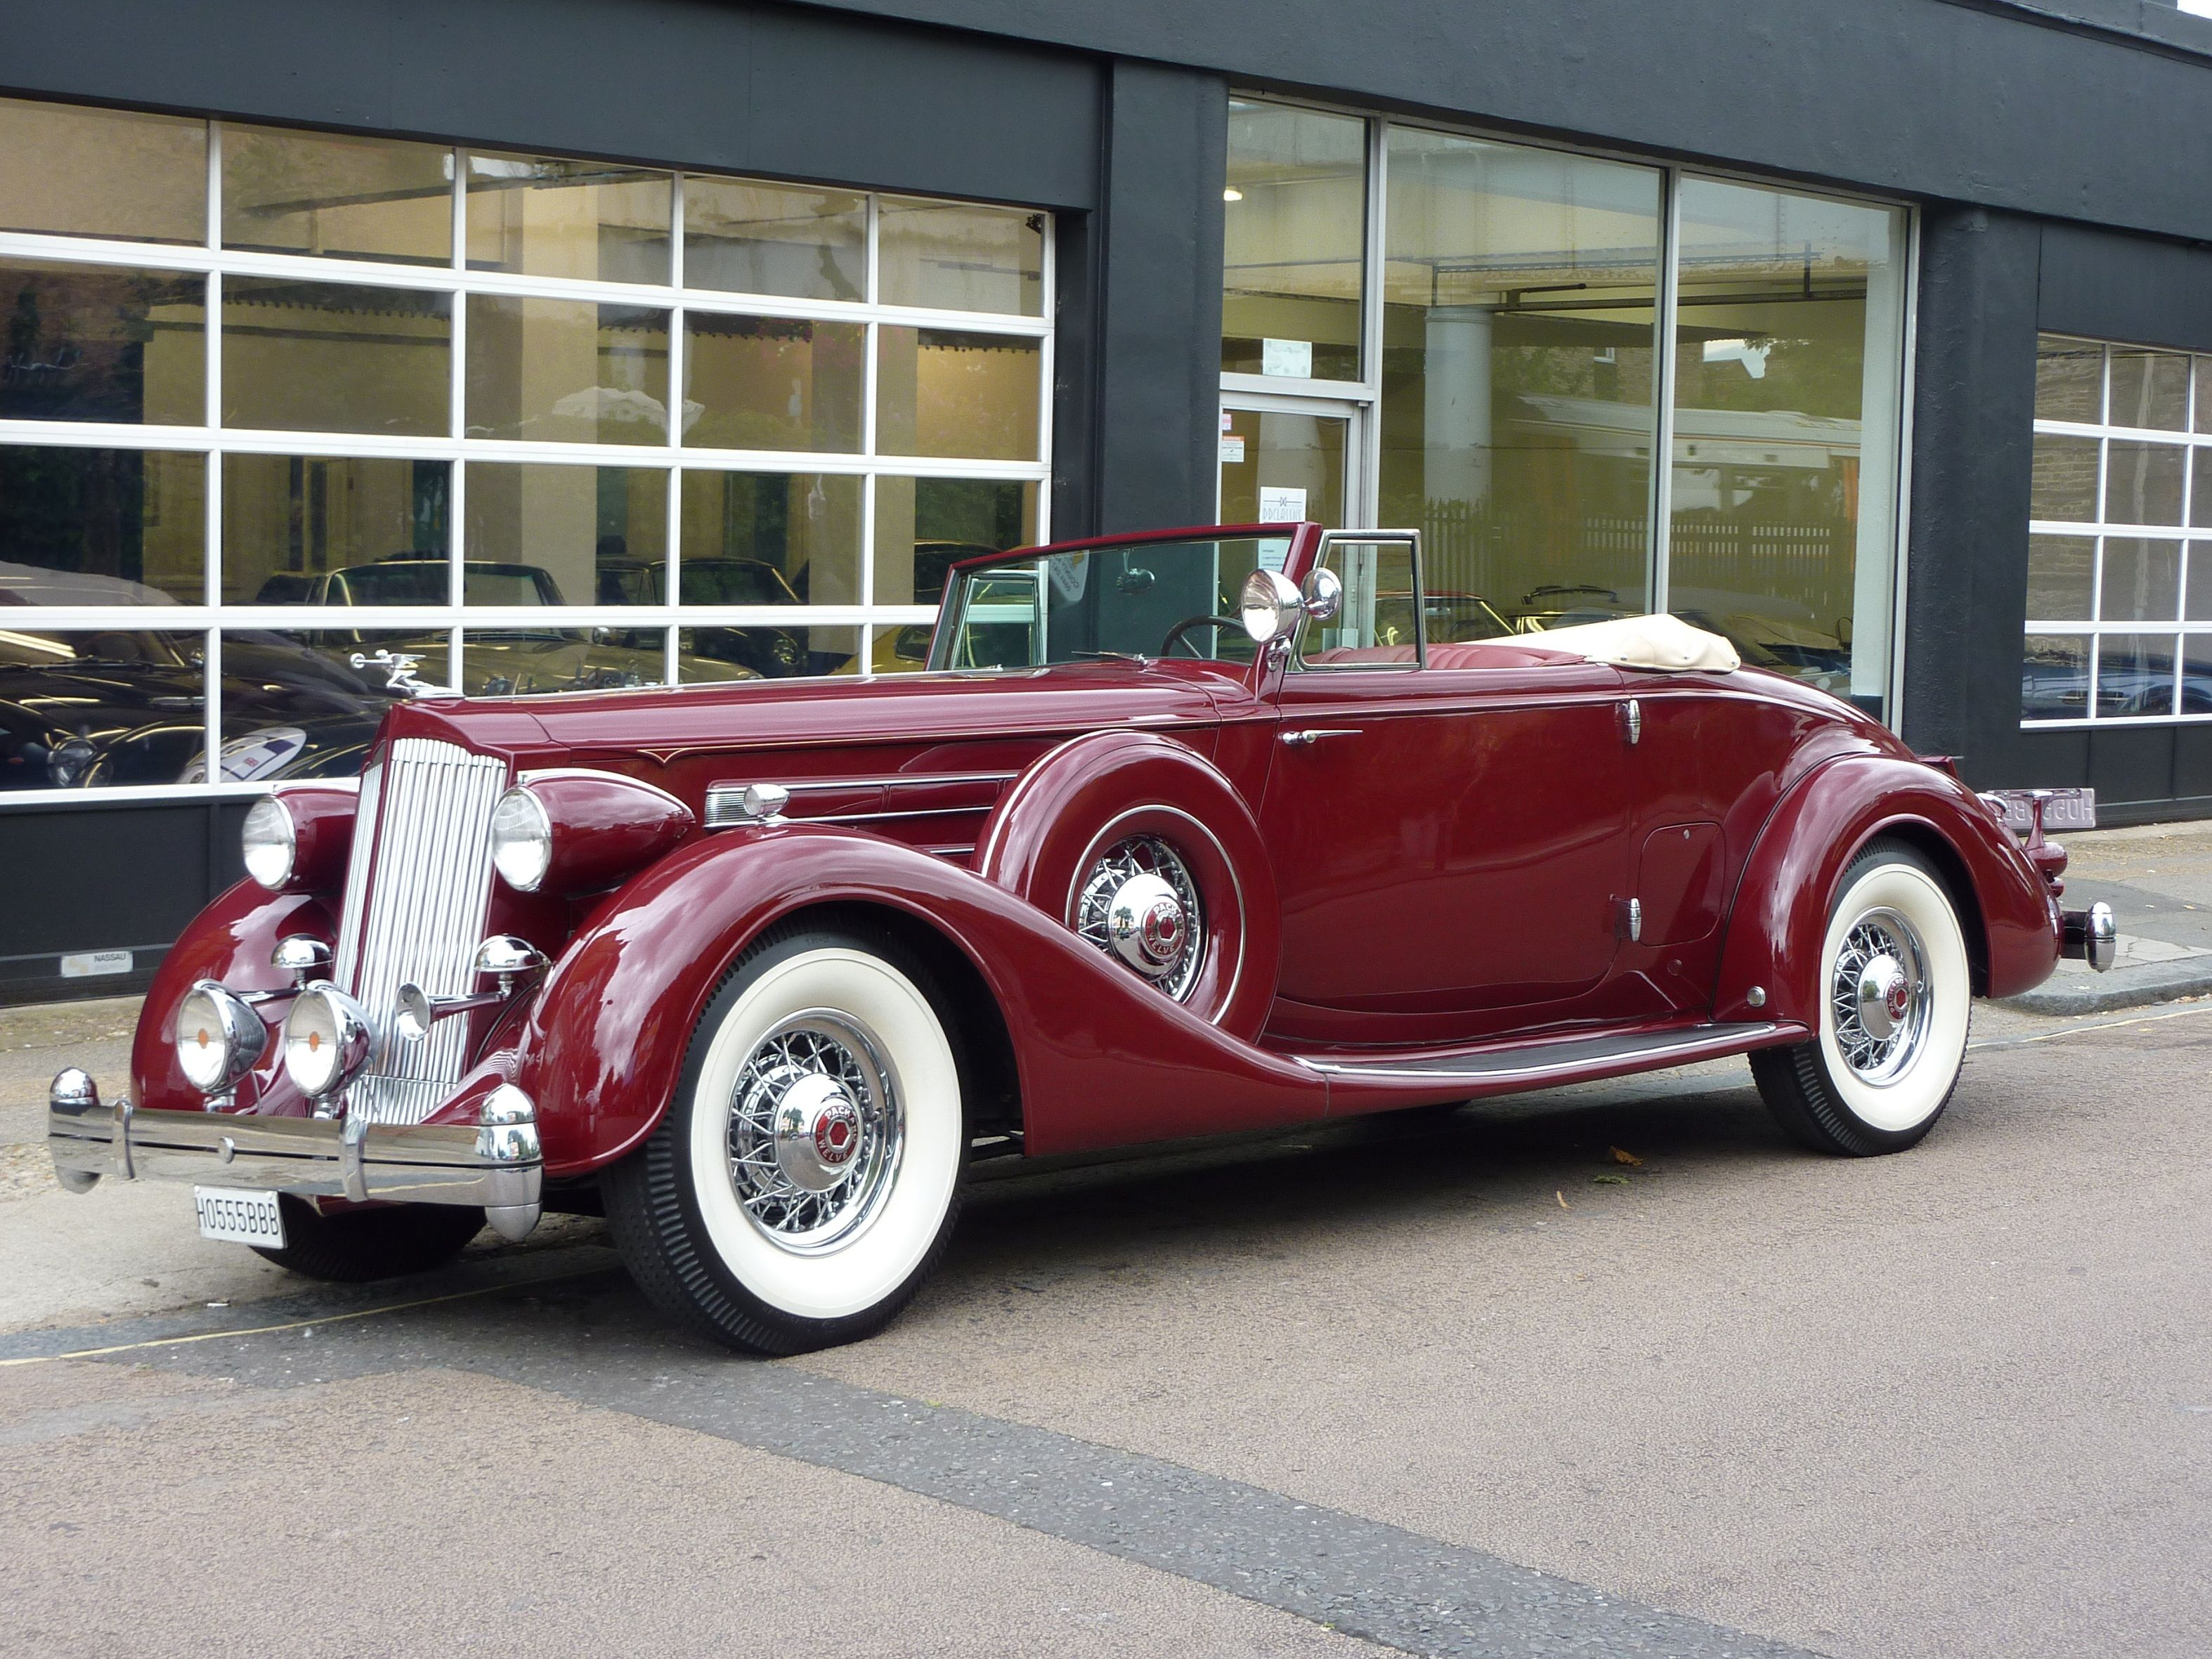 Packard V12 Roadster Lhd Sold For Sale At Dd Classics Fancy Cars Classic Cars Fantasy Cars